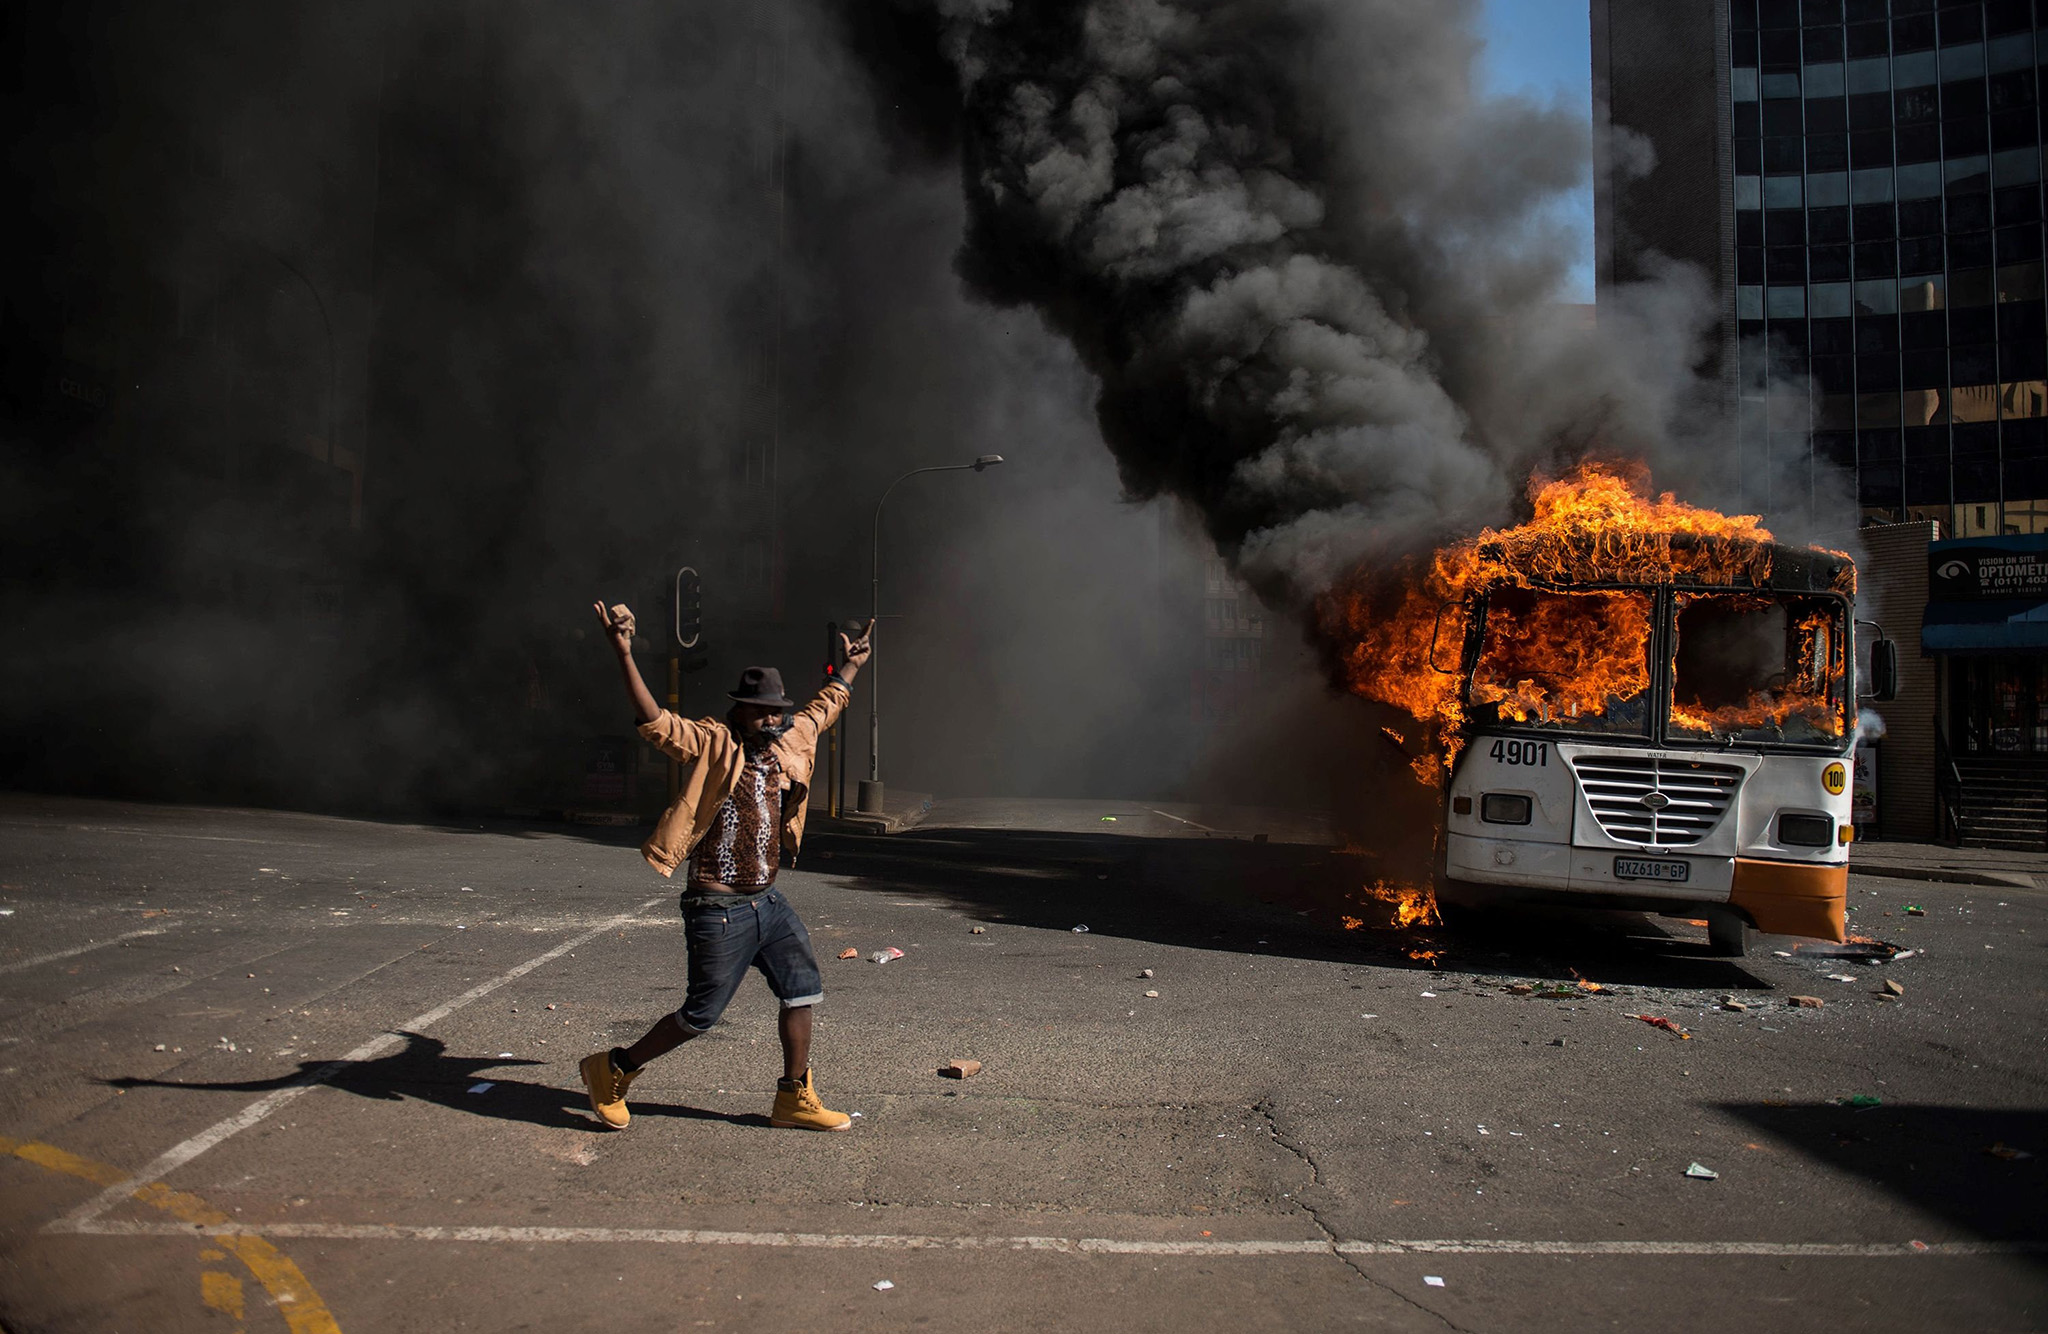 A student gestures near a burning bus during clashes with riot police following a protest over University tuition fees on October 10, 2016 in Johannesburg.  South African student protesters and police clashed in renewed violence in Johannesburg as attempts to re-open Wits University descended into running battles on campus. Protesters throwing rocks were dispersed by riot police using tear gas, rubber bullets and stun grenades as pressure ratchets up on campuses across the country over tuition fees.  / AFP PHOTO / MUJAHID SAFODIENMUJAHID SAFODIEN/AFP/Getty Images